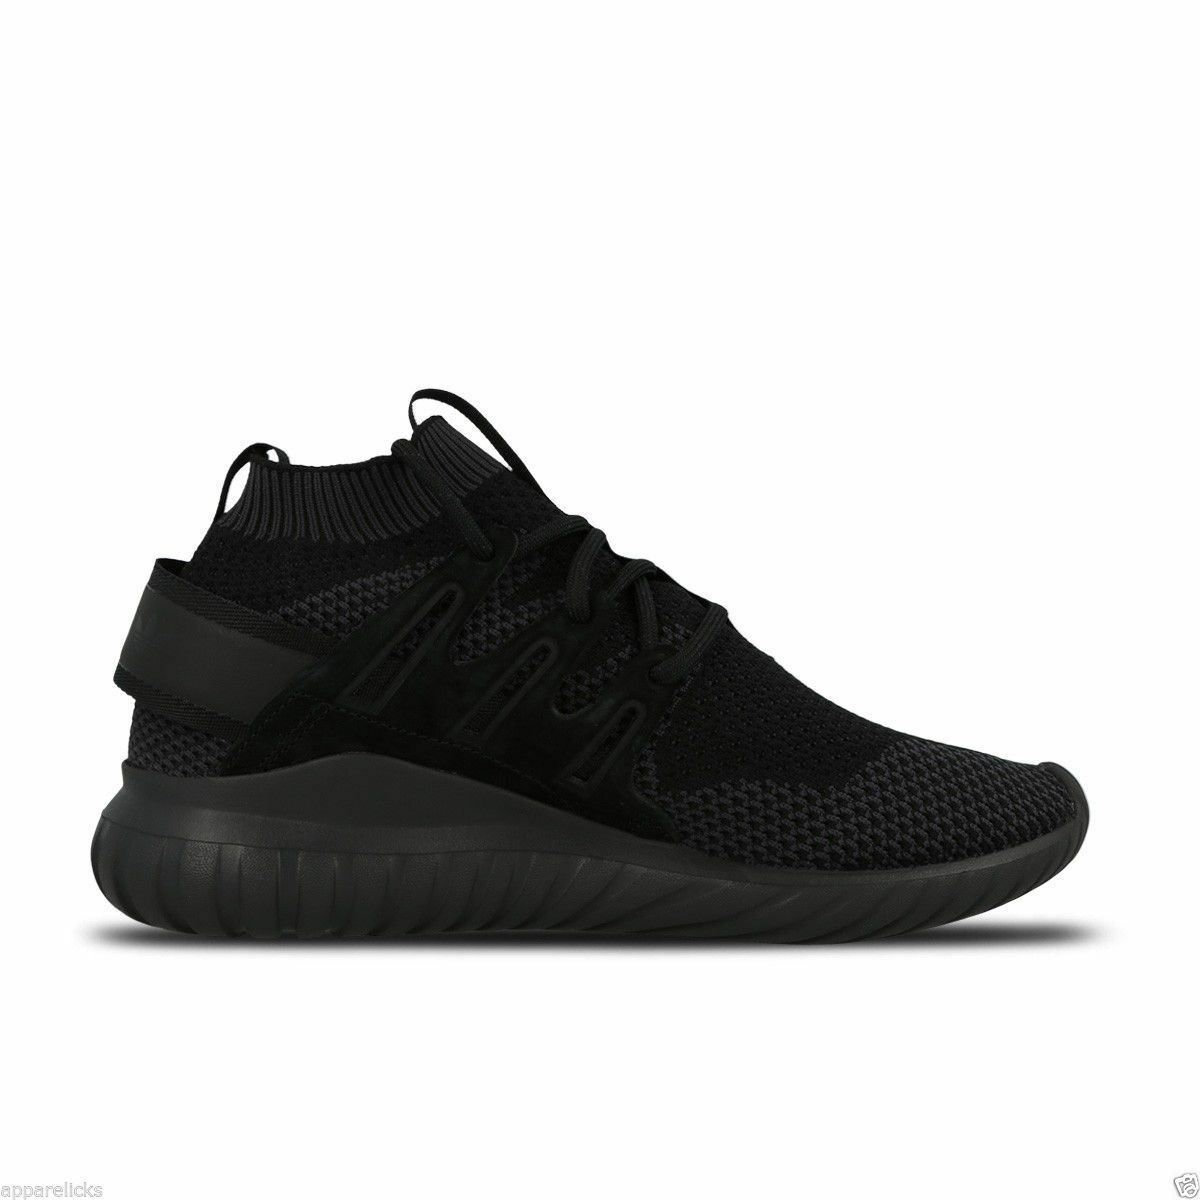 Adidas Men's Tubular Nova Primeknit Trainers Fitness Fitness Fitness Gym Active Black White a3fb64